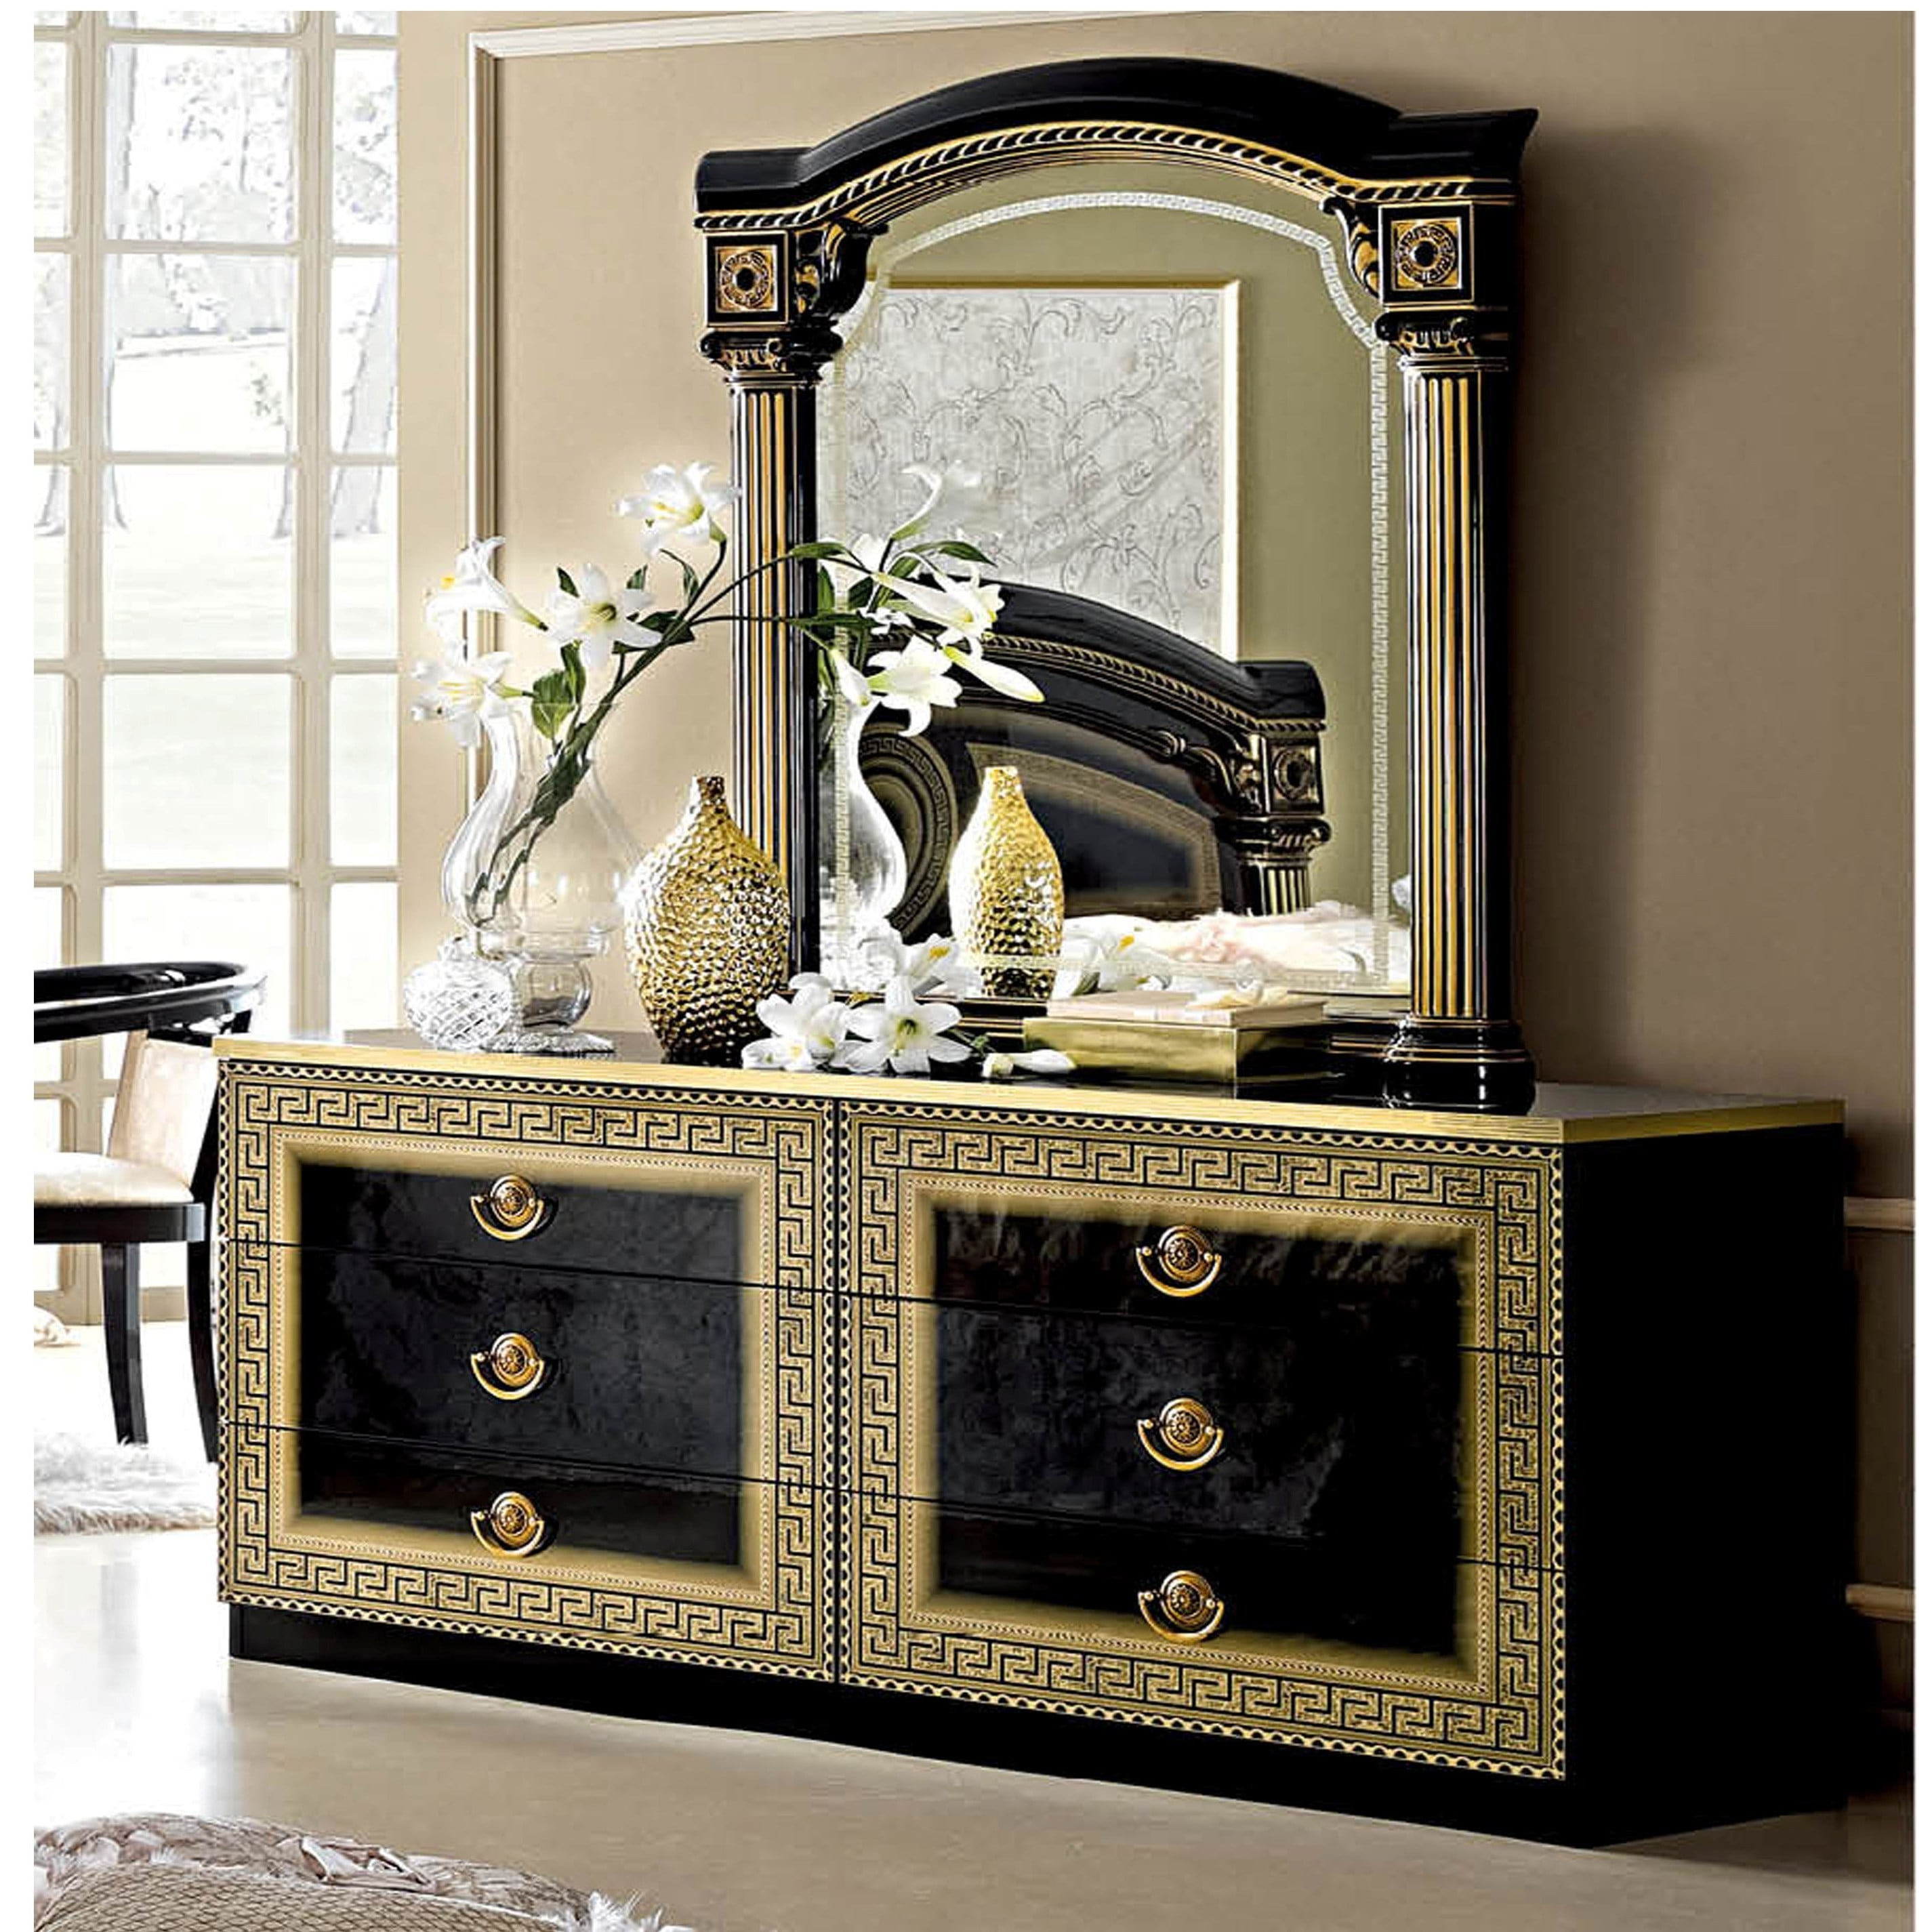 lighting drawer white finish item capitol zoe image black cfm mirror and glass mirrored shown magnifying bassett chest in dresser company